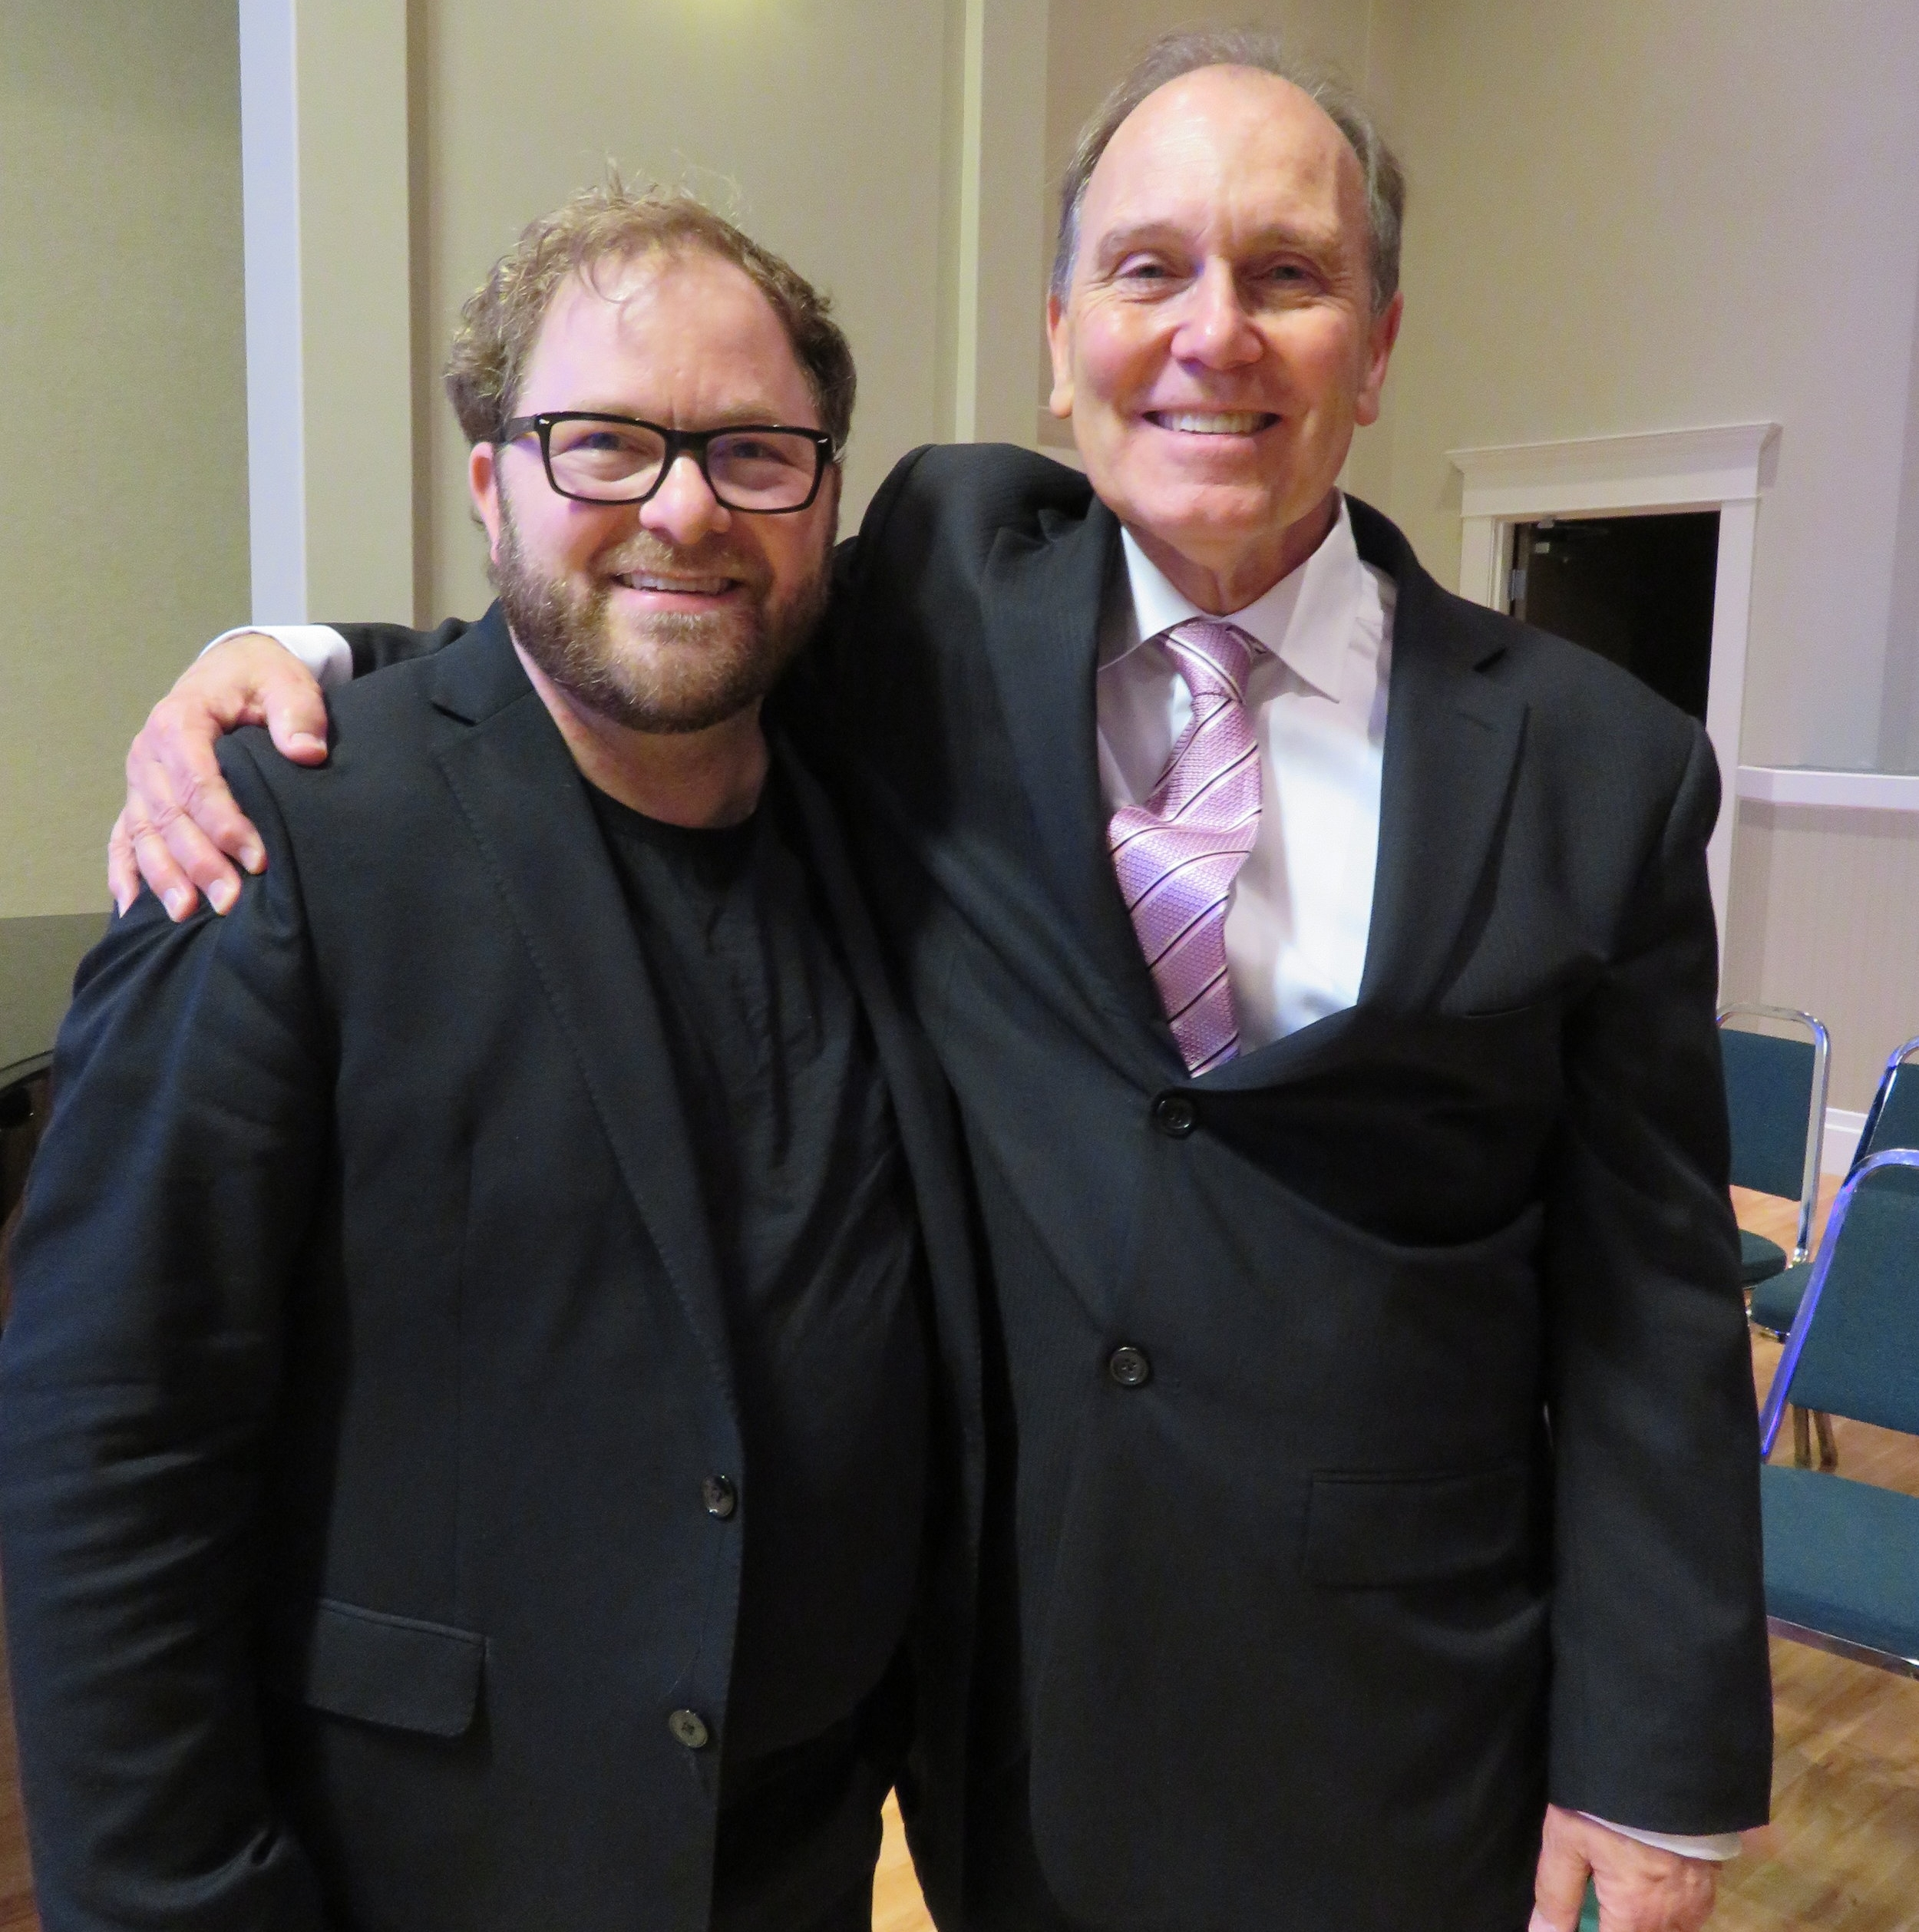 Carlos Foggin & Glen Montgomery May 15, 2018 - Glen performed the Emperor Concerto with the Rocky Mountain Symphony.